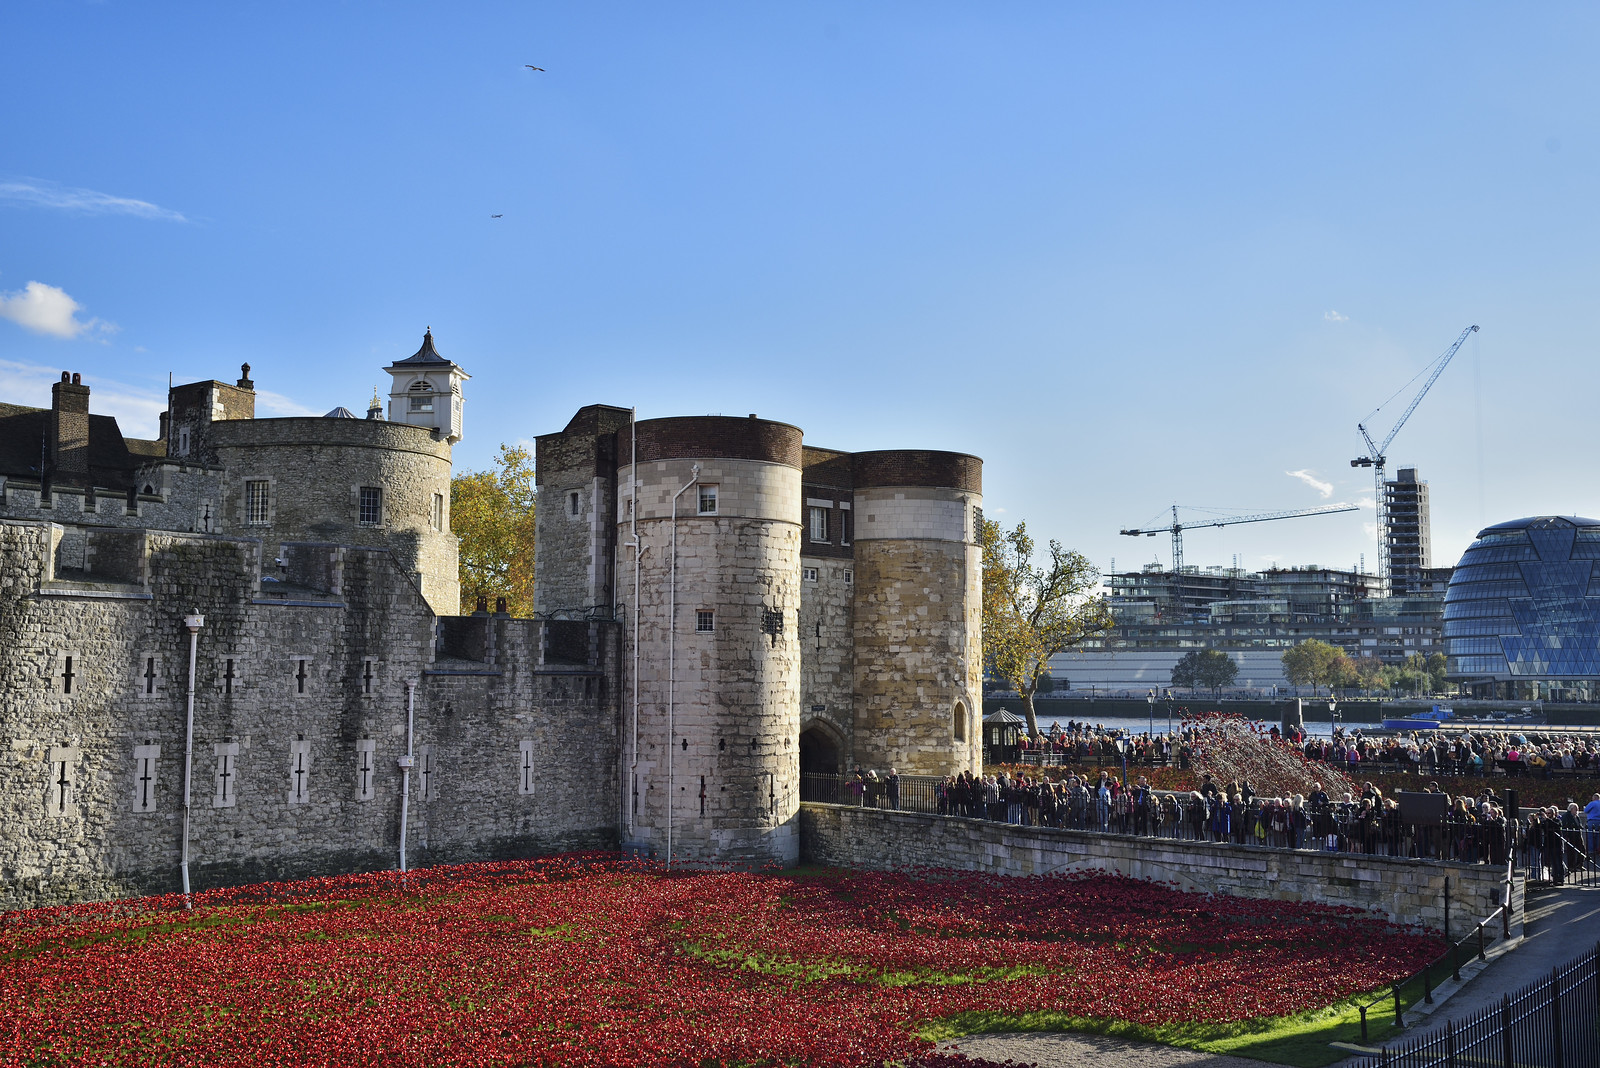 Tower of London - Blood Swept Lands and Seas of Red